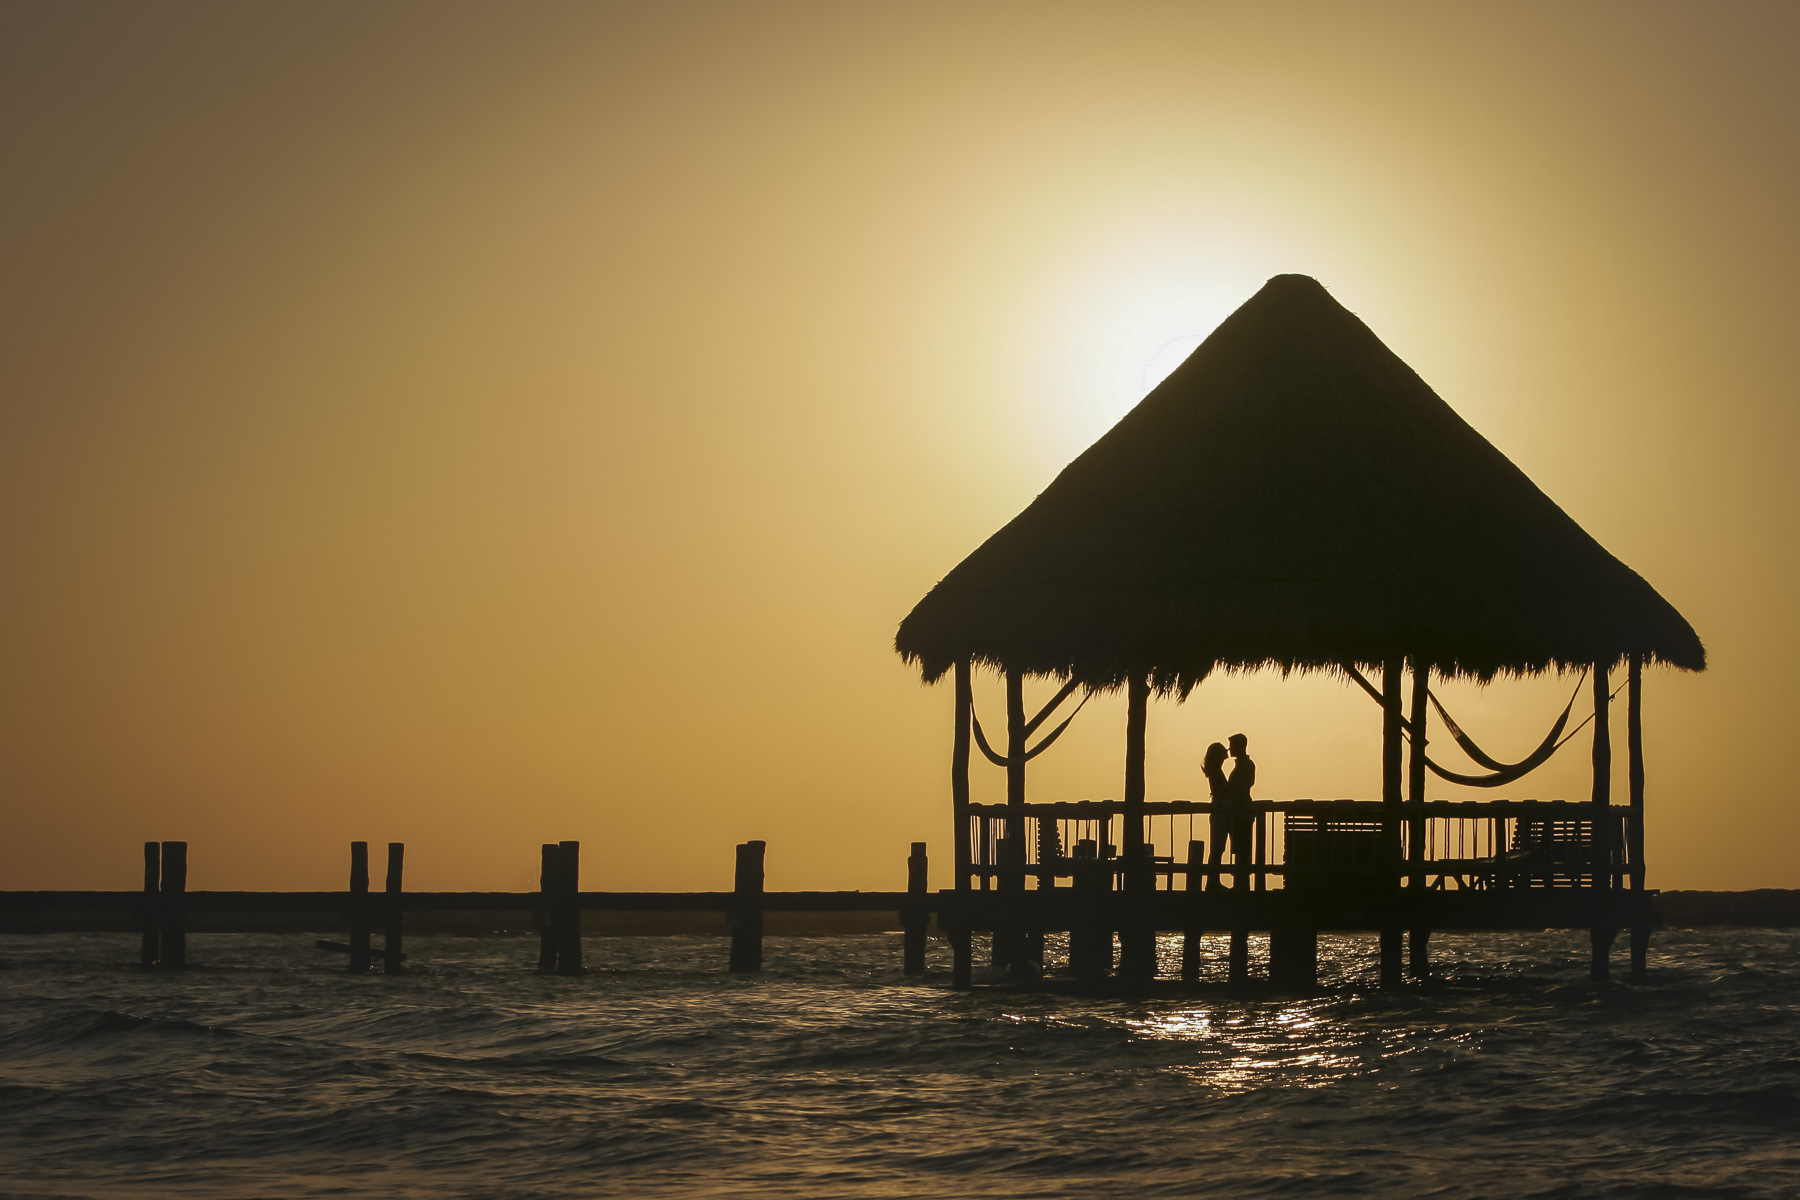 Man and woman on ocean pier embrace during sun rise.